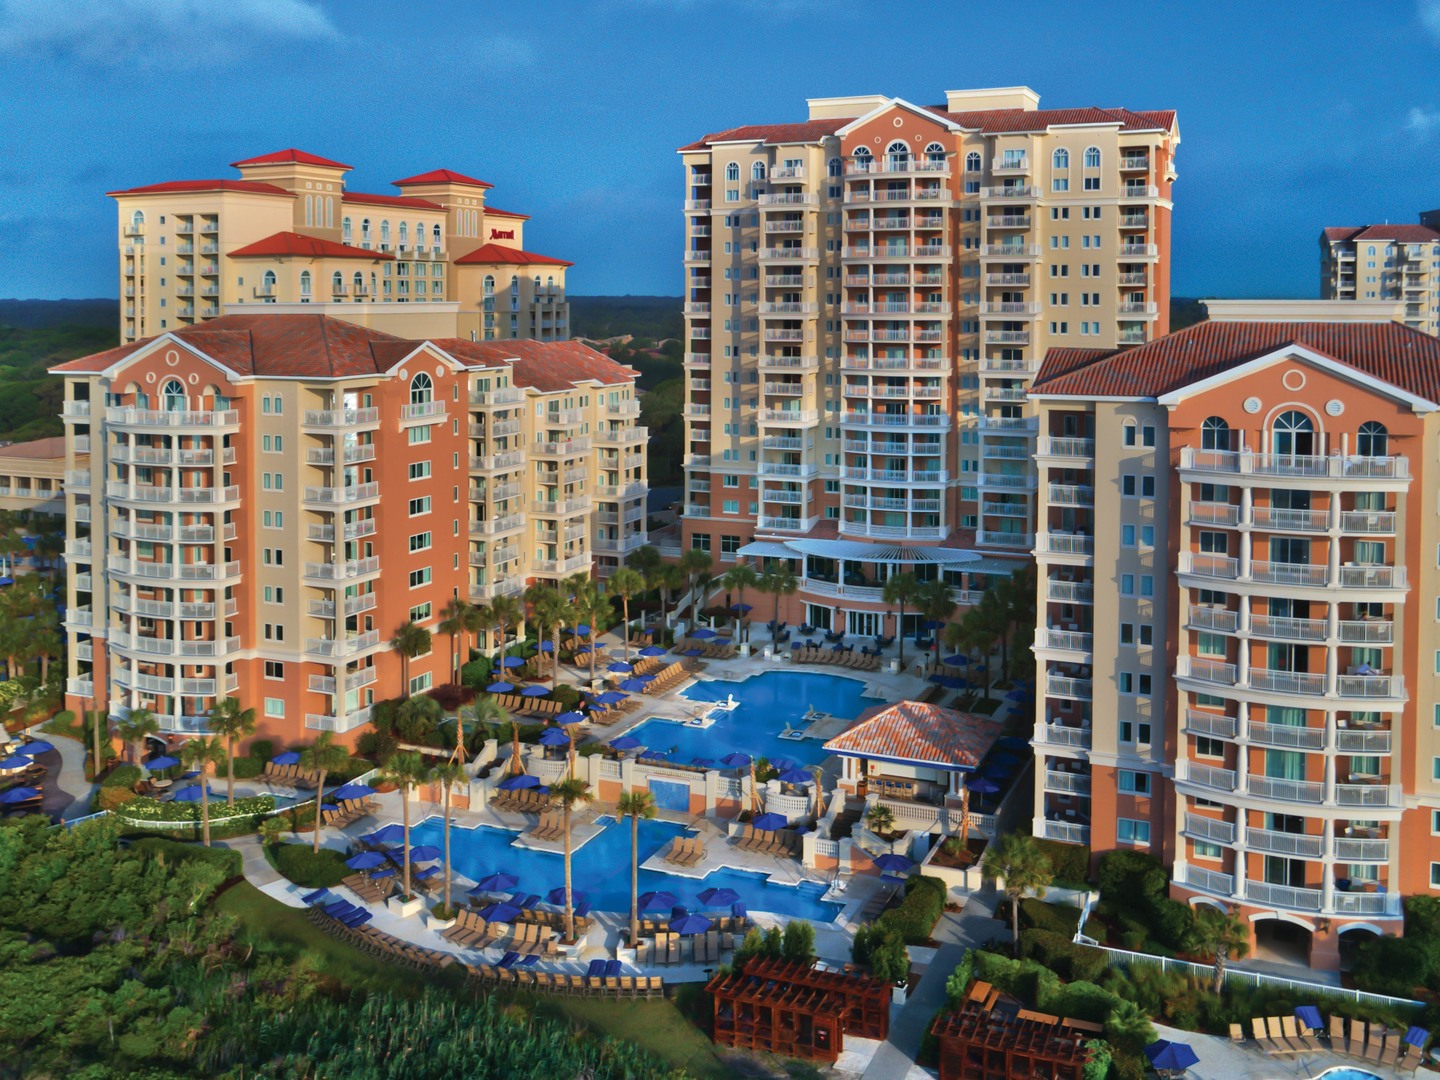 Marriott's OceanWatch Aerial Exterior View. Marriott's OceanWatch is located in Myrtle Beach, South Carolina United States.